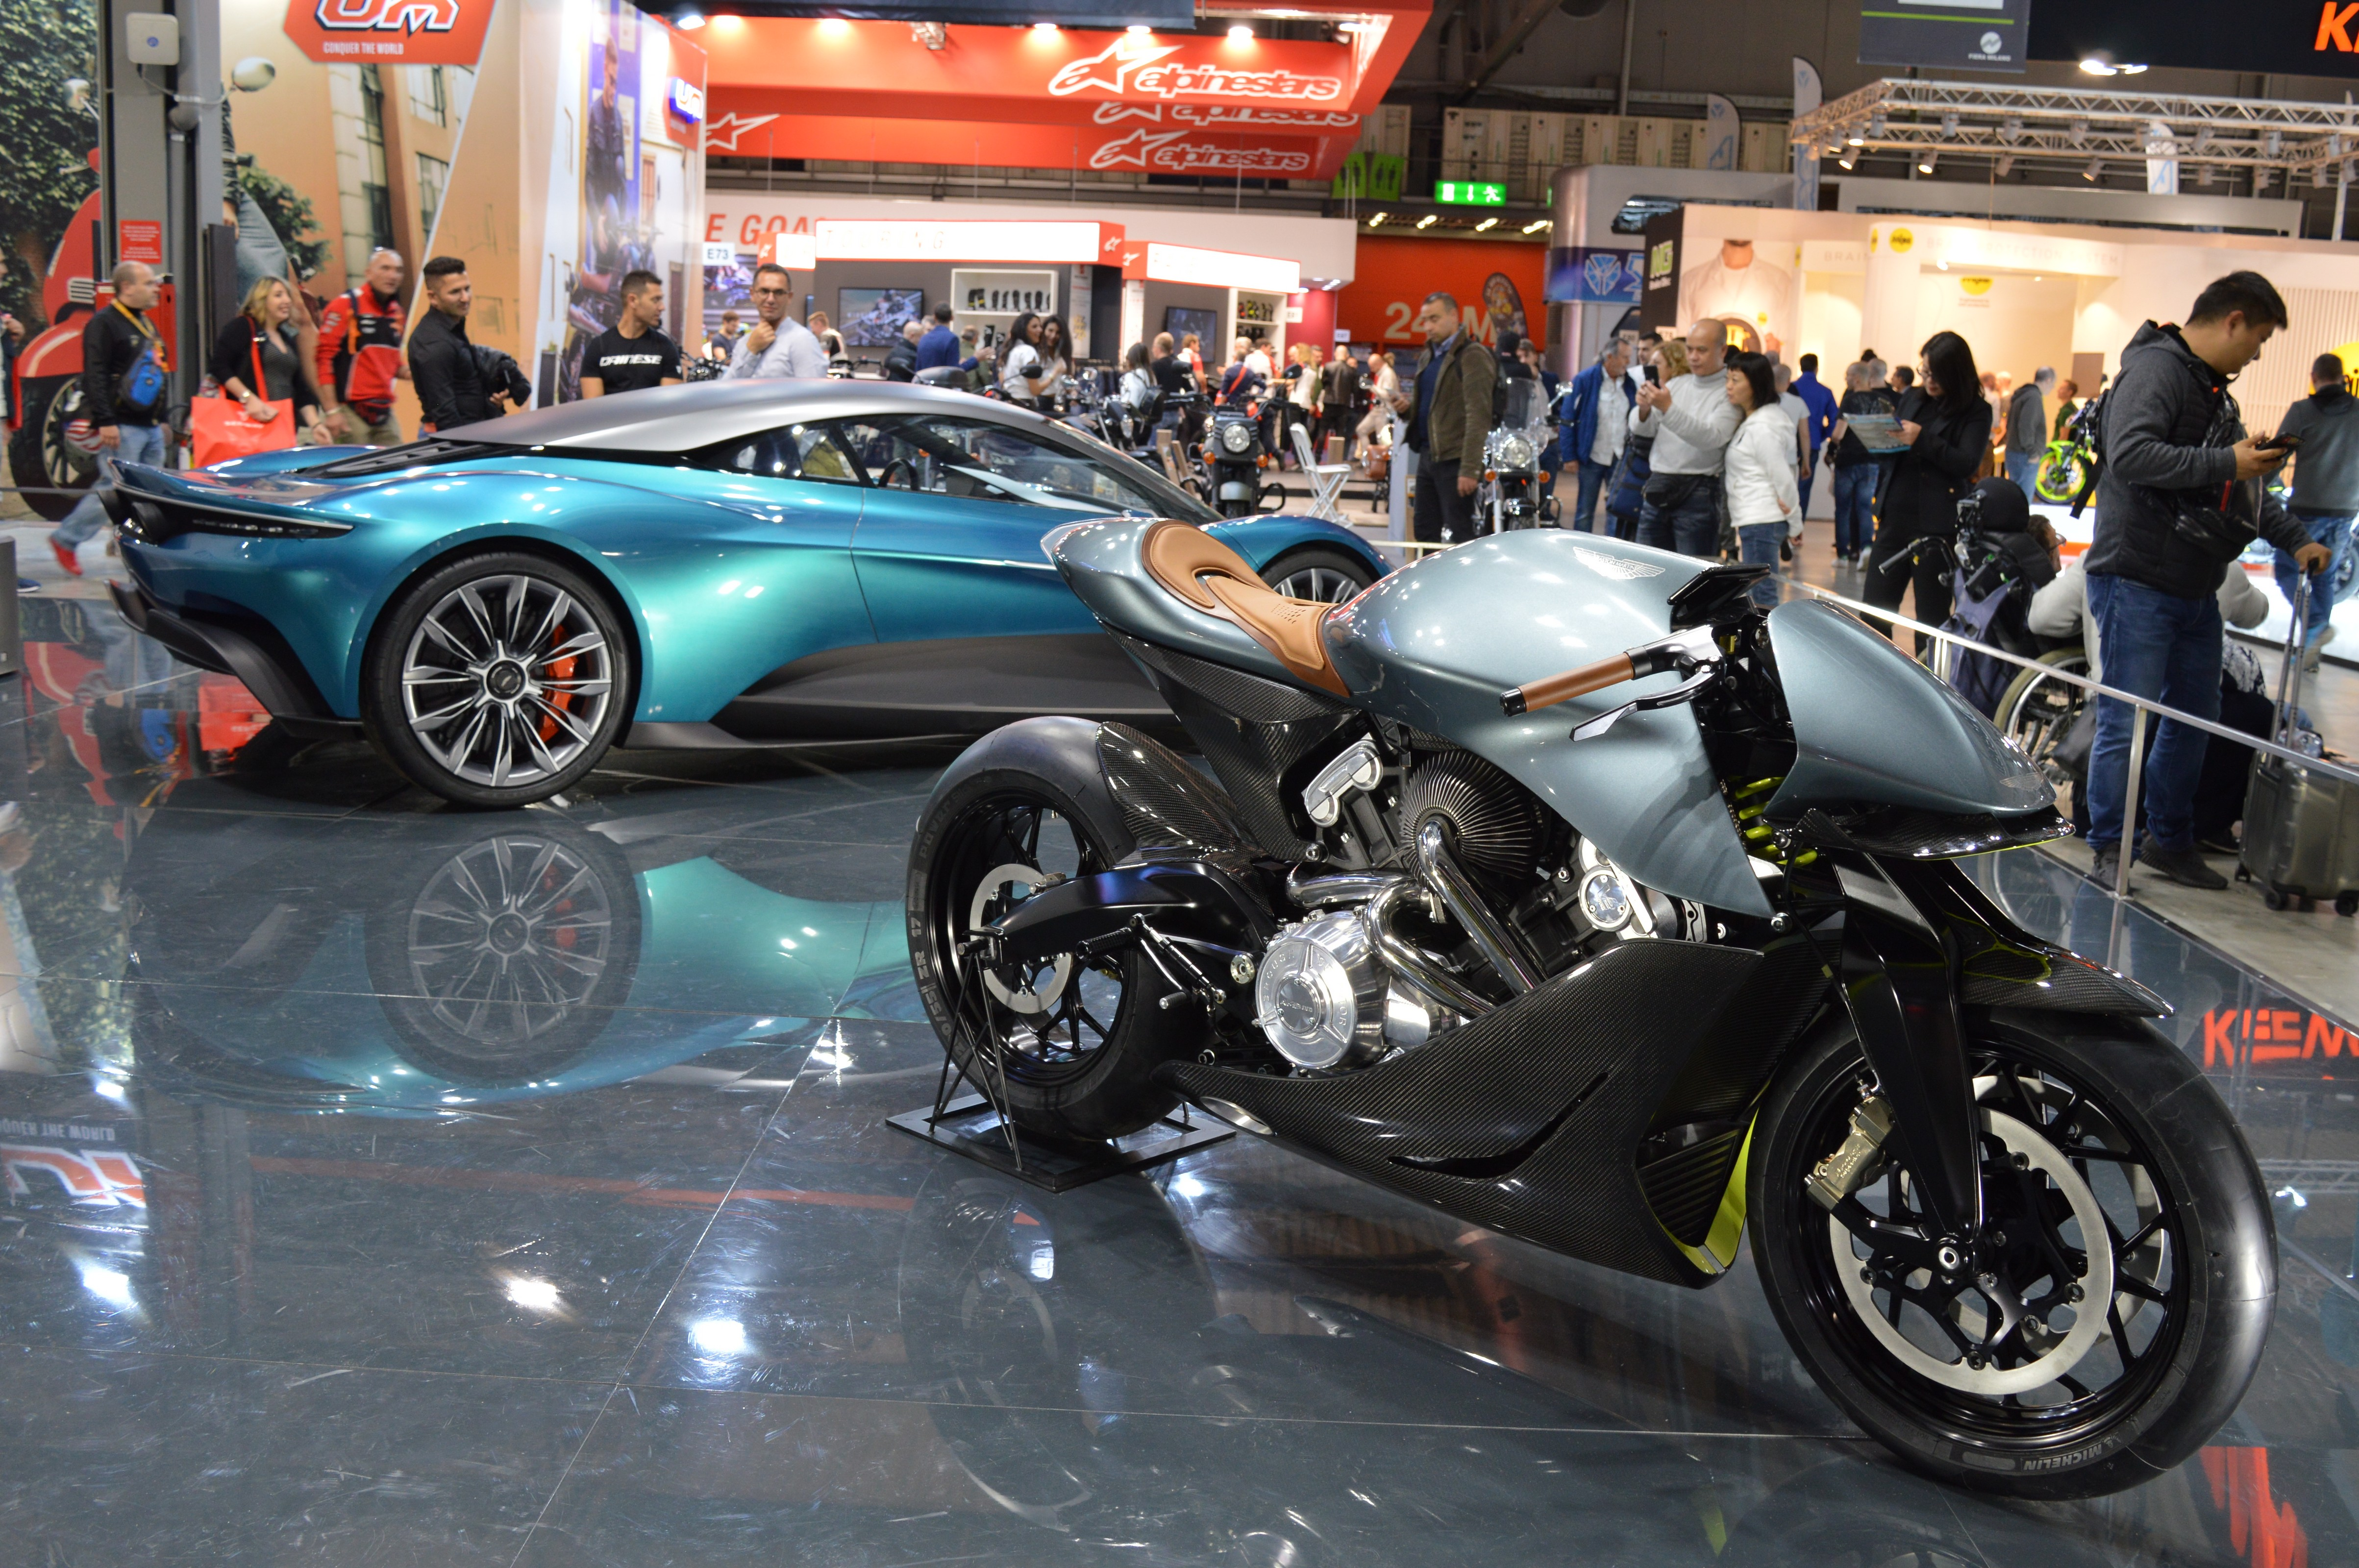 Gallery: Horsepower and electric motorcycles galore at EICMA 2019